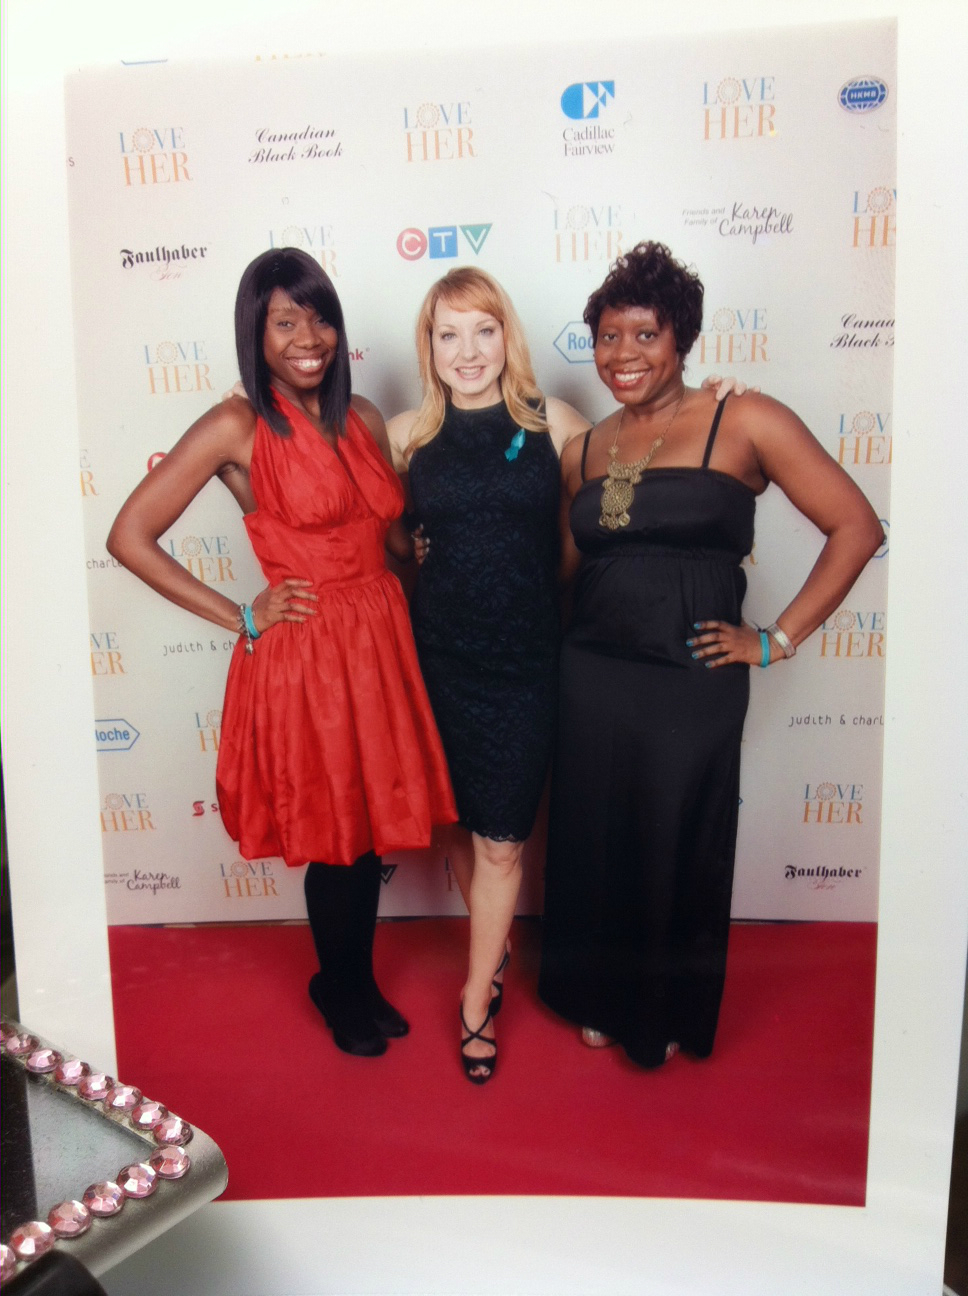 The dress he wore toronto - Jessica Holmes Judith Charles Dress Was A Favorite Jeanne Beker Wore The Same Dress But Added A Belt Its Is A Fab Dress We Must Admit